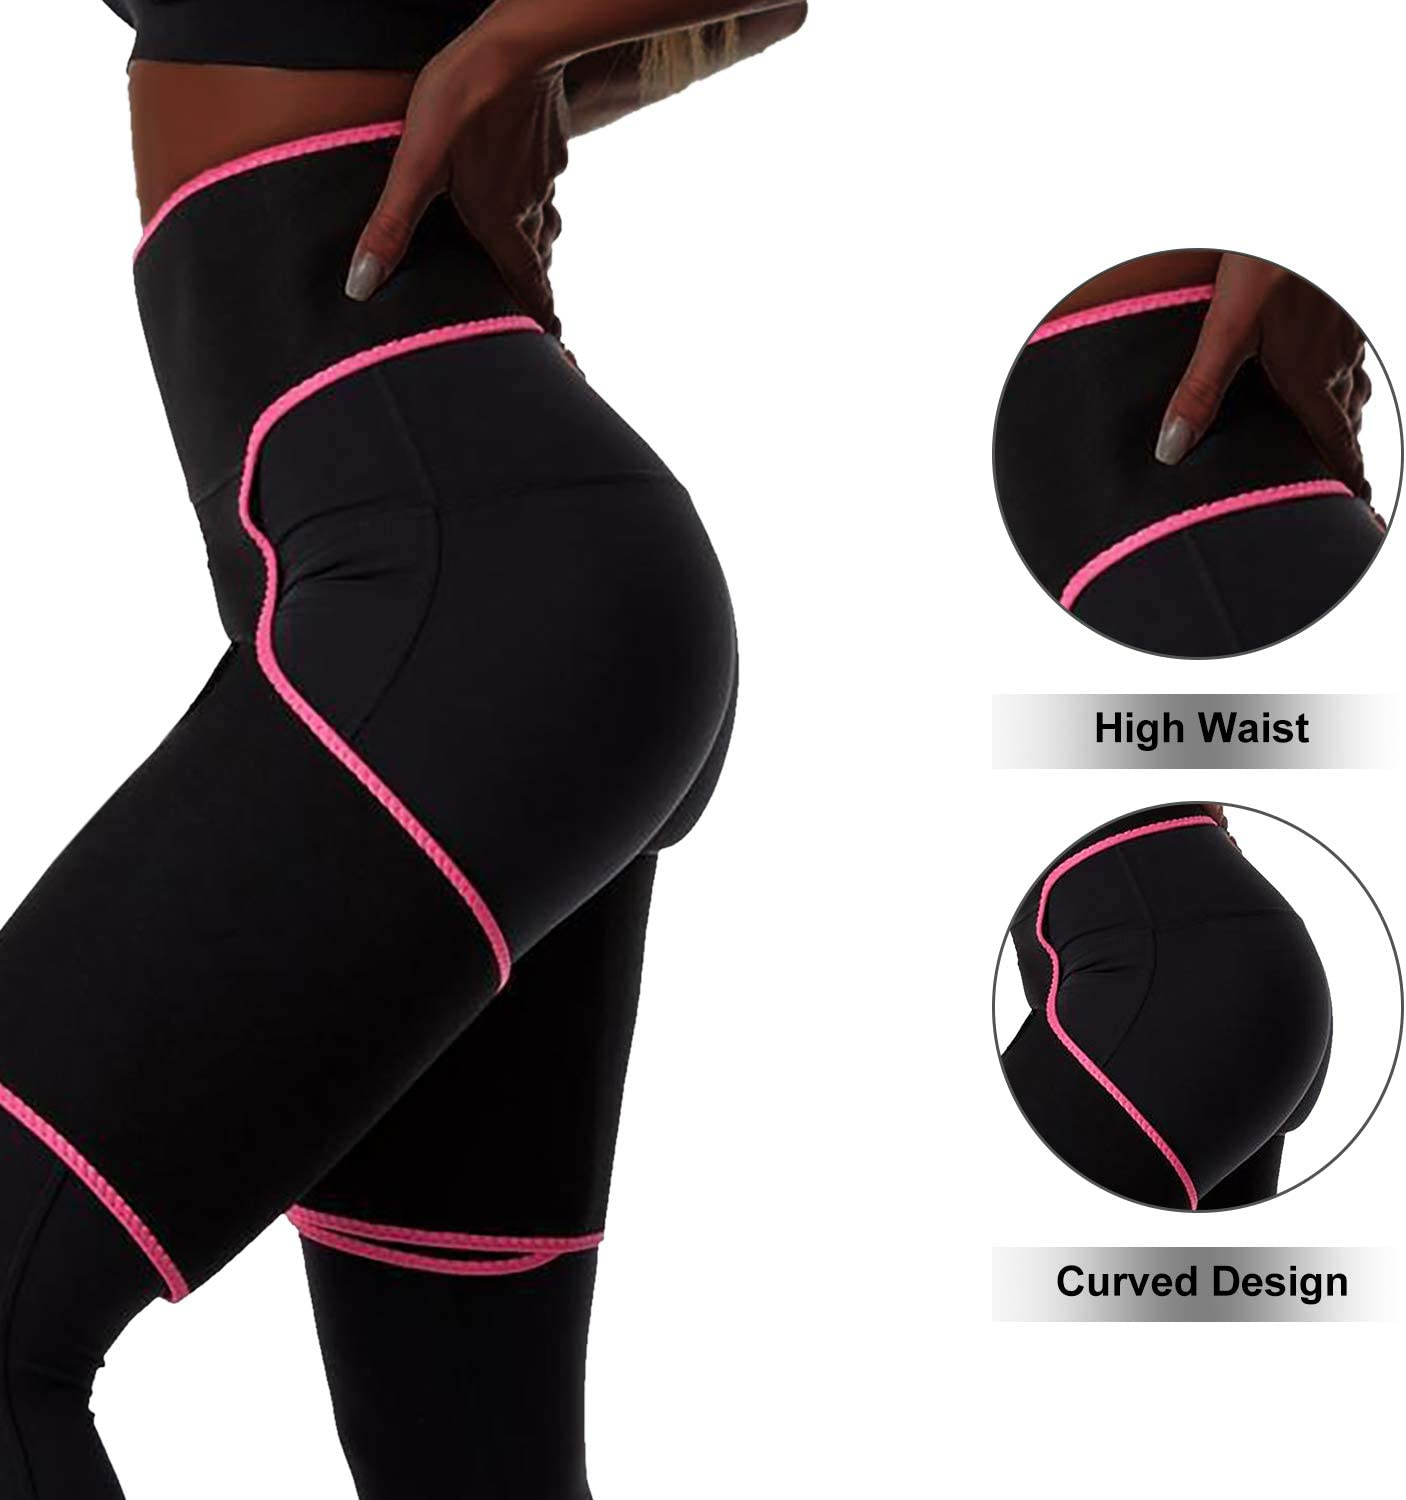 MIAODAM 3-in-1 Waist and Thigh Trainer Adjustable Hip Enhancer Shaper for Women Butt Lifter and Thigh Trimmer